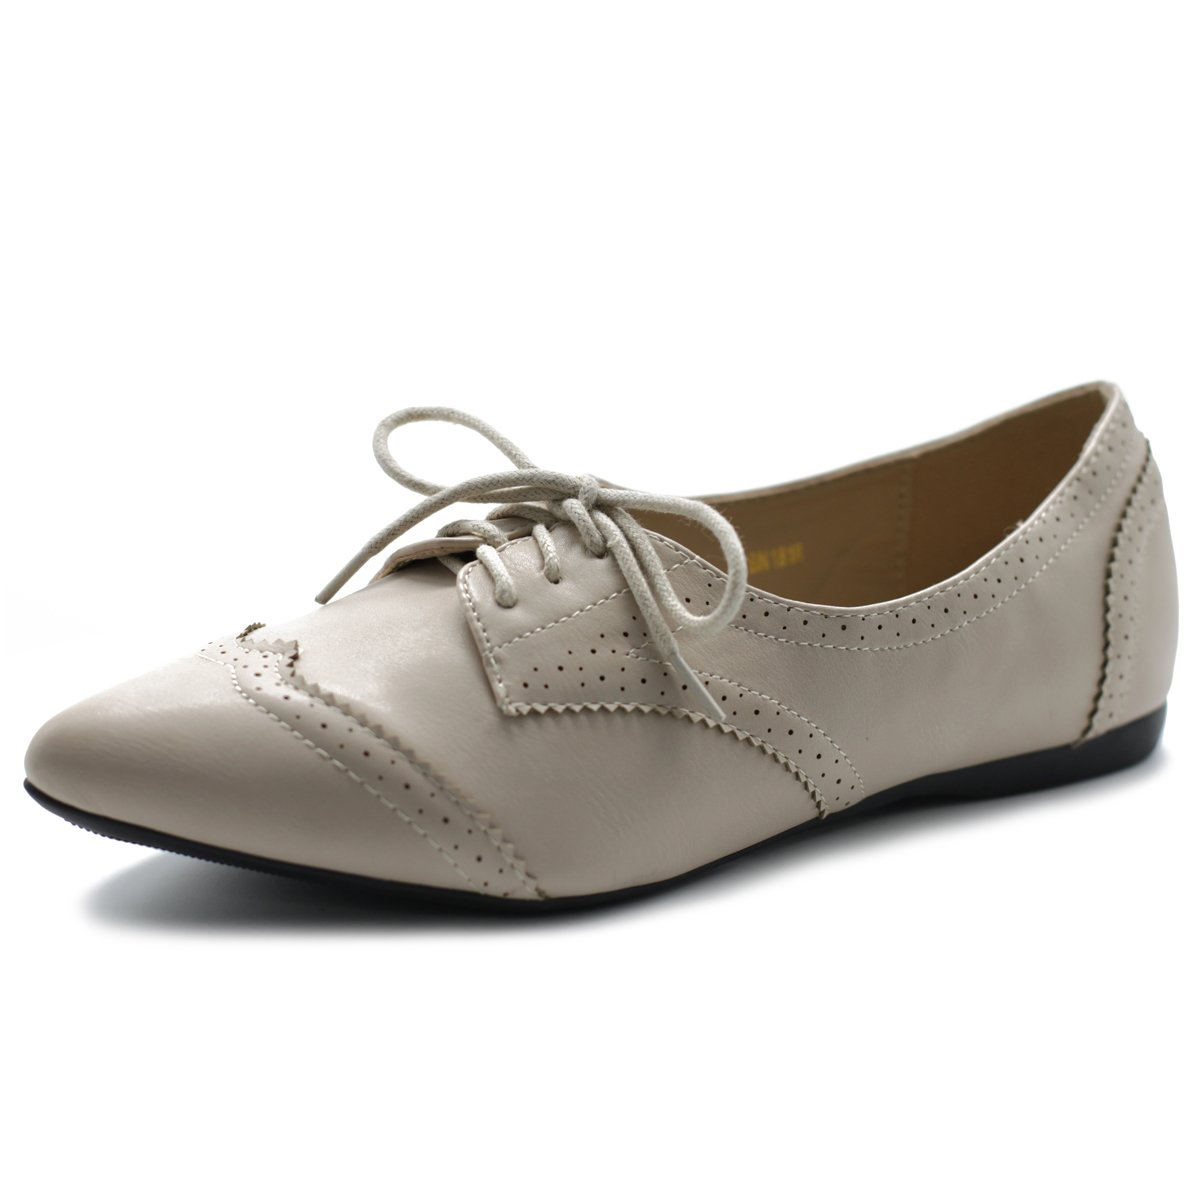 Ollio Women's Ballet Shoe Flat Enamel Pointed Toe Oxford M1818 (9 B(M) US, Beige) by Ollio (Image #1)